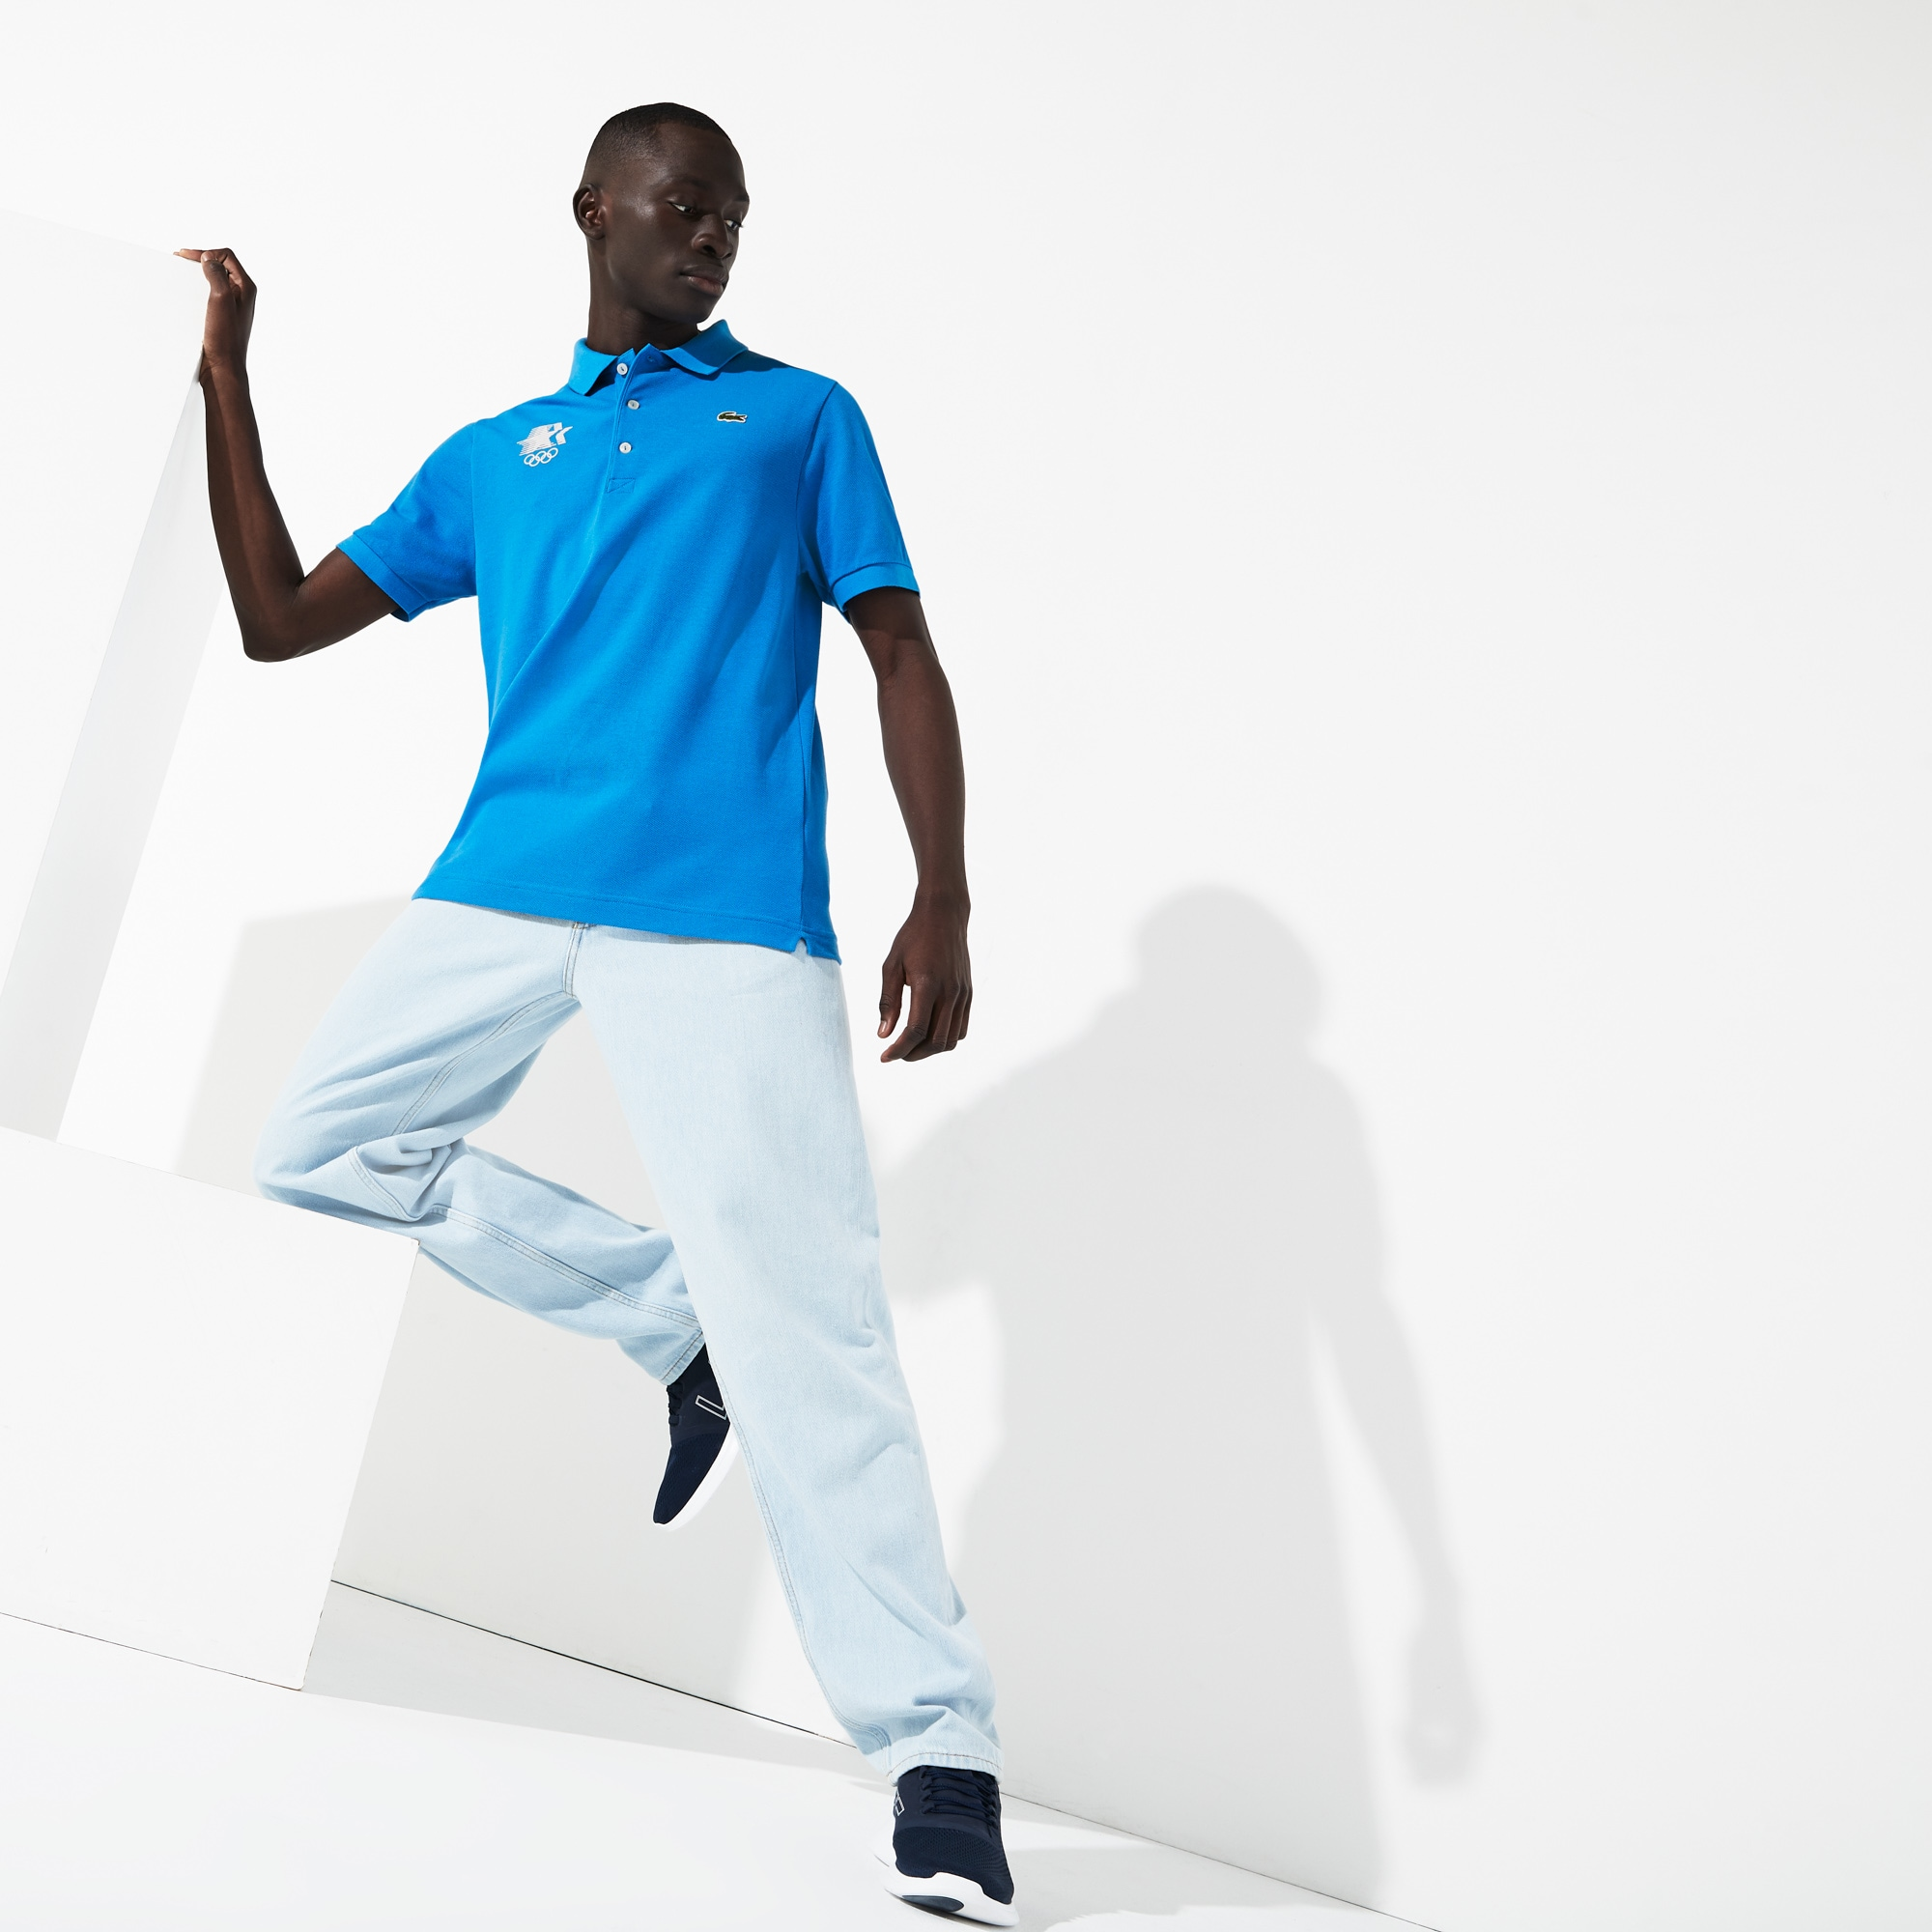 Lacoste Tops MEN'S OLYMPIC HERITAGE COLLECTION LOGO COTTON POLO